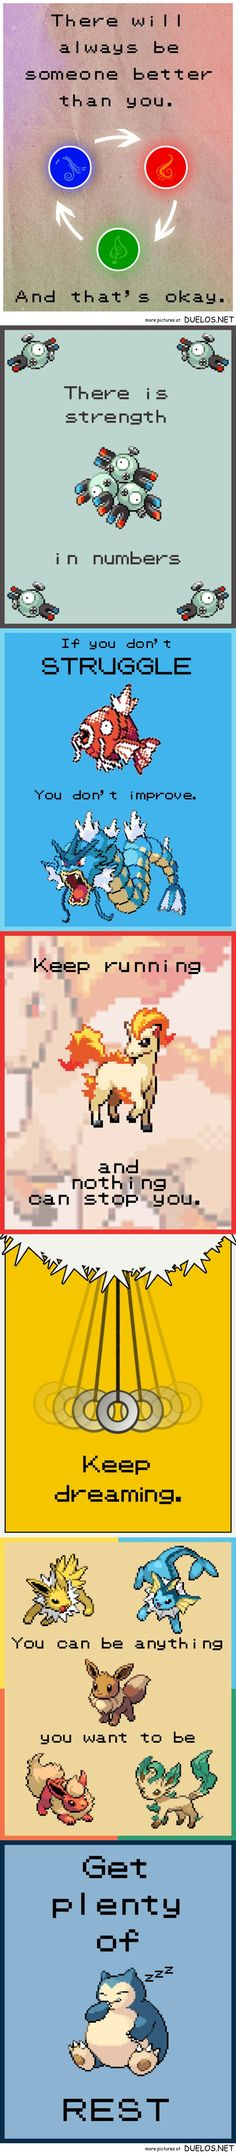 Motivational Pokemon Posters  I read this while listening to the end of the Firebird Suite (1919 version). Pretty inspirational.